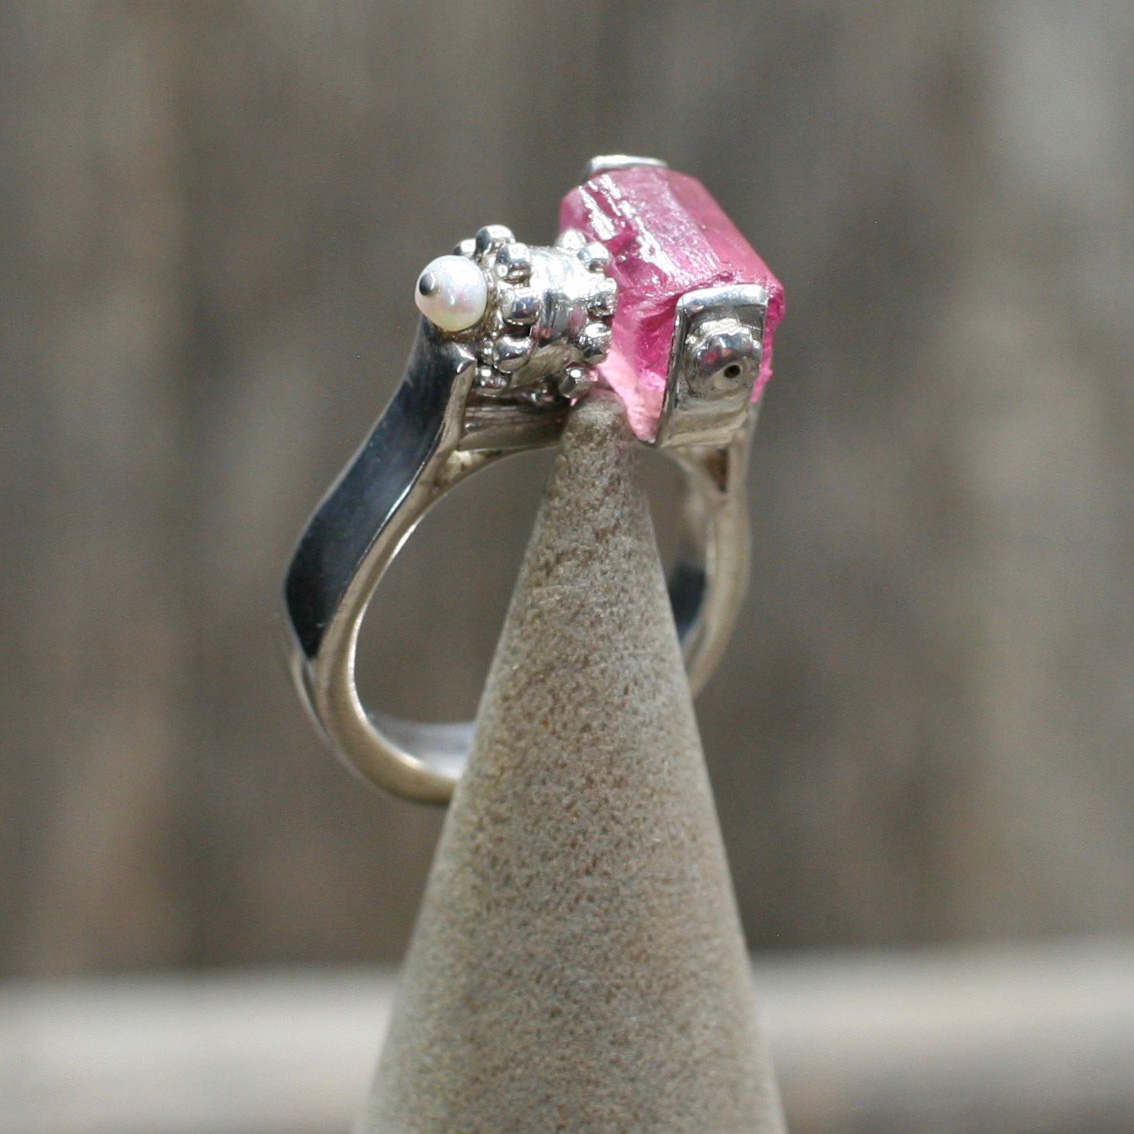 Handcrafted Bar Ring with Pink Tourmaline Crystal